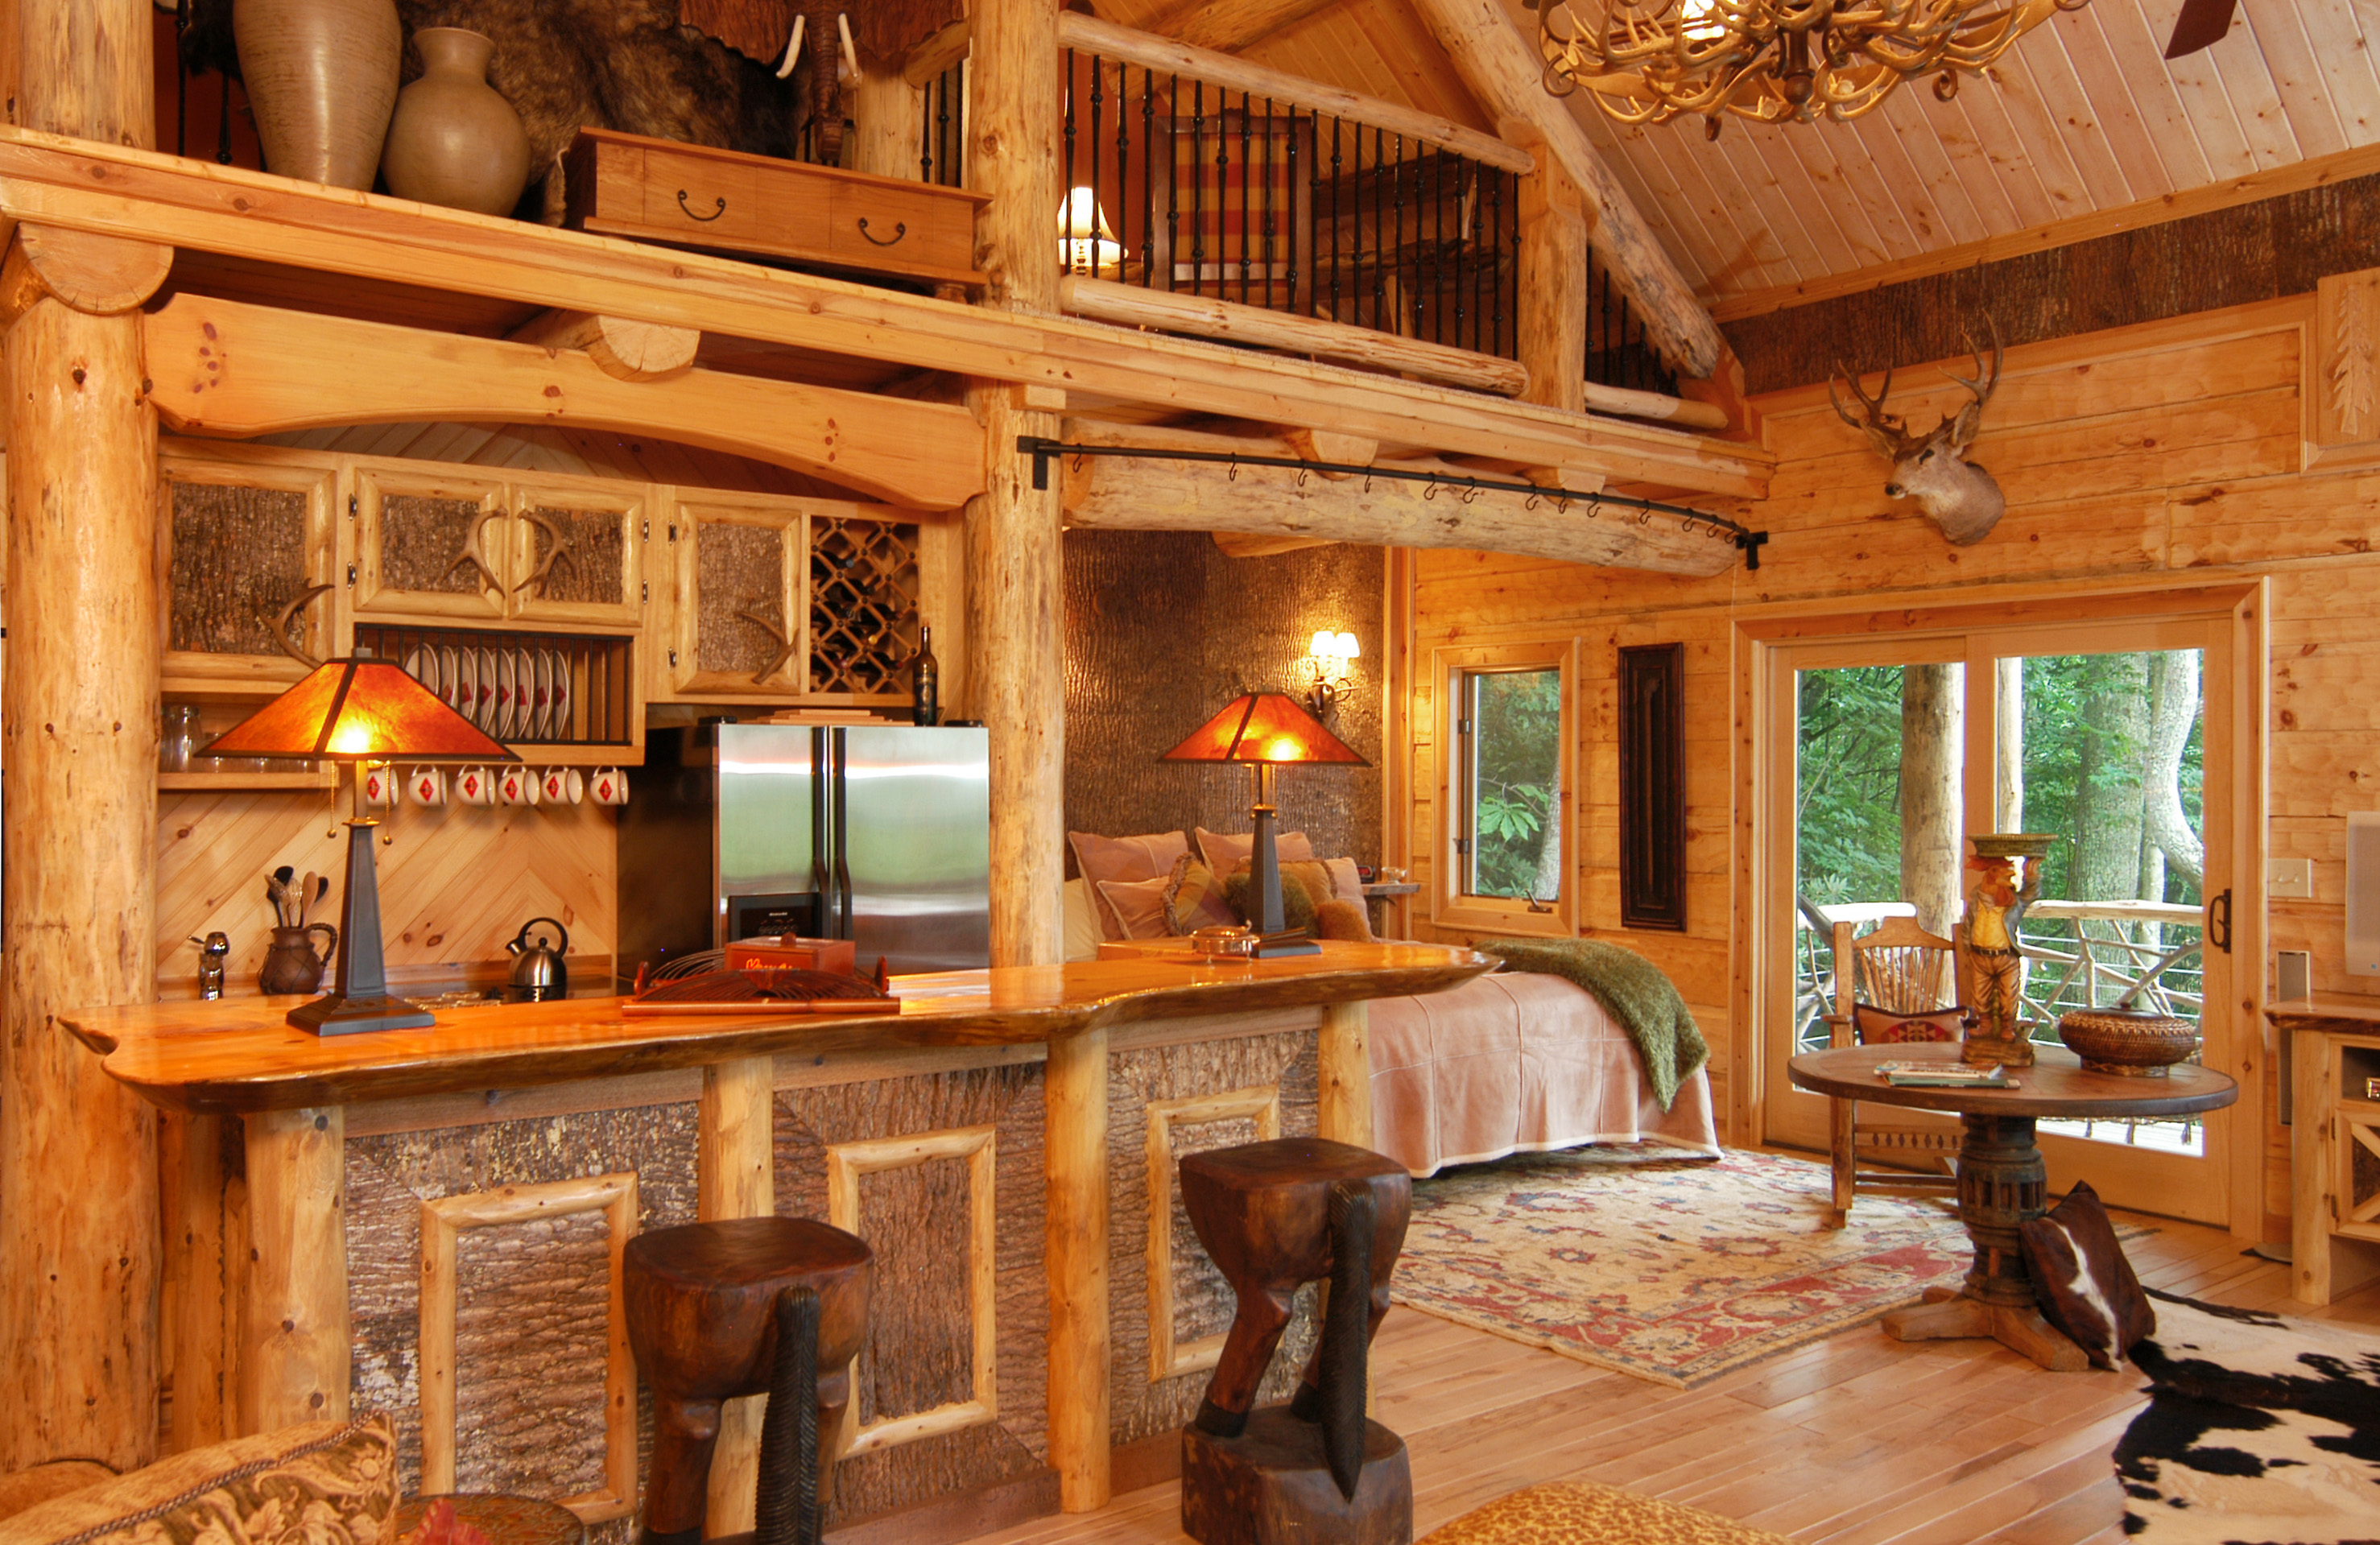 bedroom cabins htm with resort has cabin dsc woods for branson log perfect luxury in swimming issues so king rentals mobility someone vrp a ramp pools